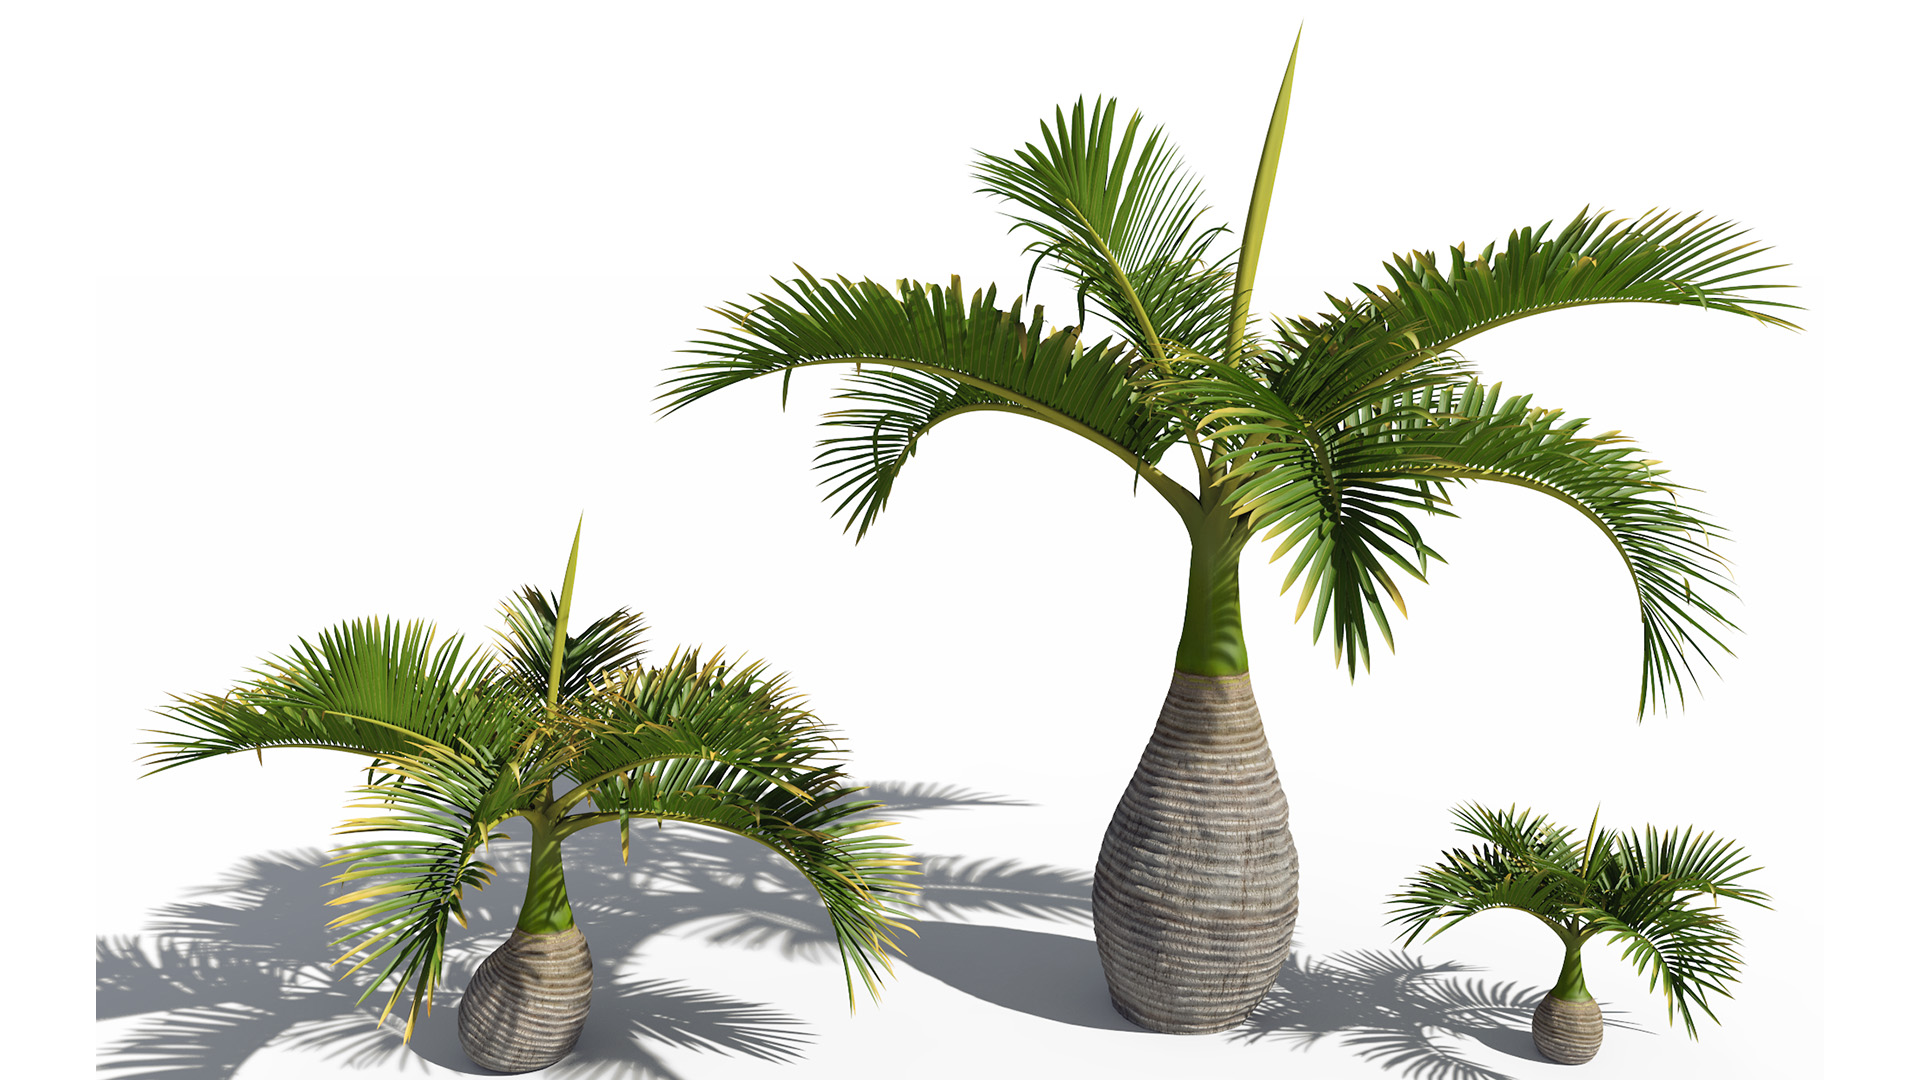 3D model of the Bottle palm Hyophorbe lagenicaulis different presets